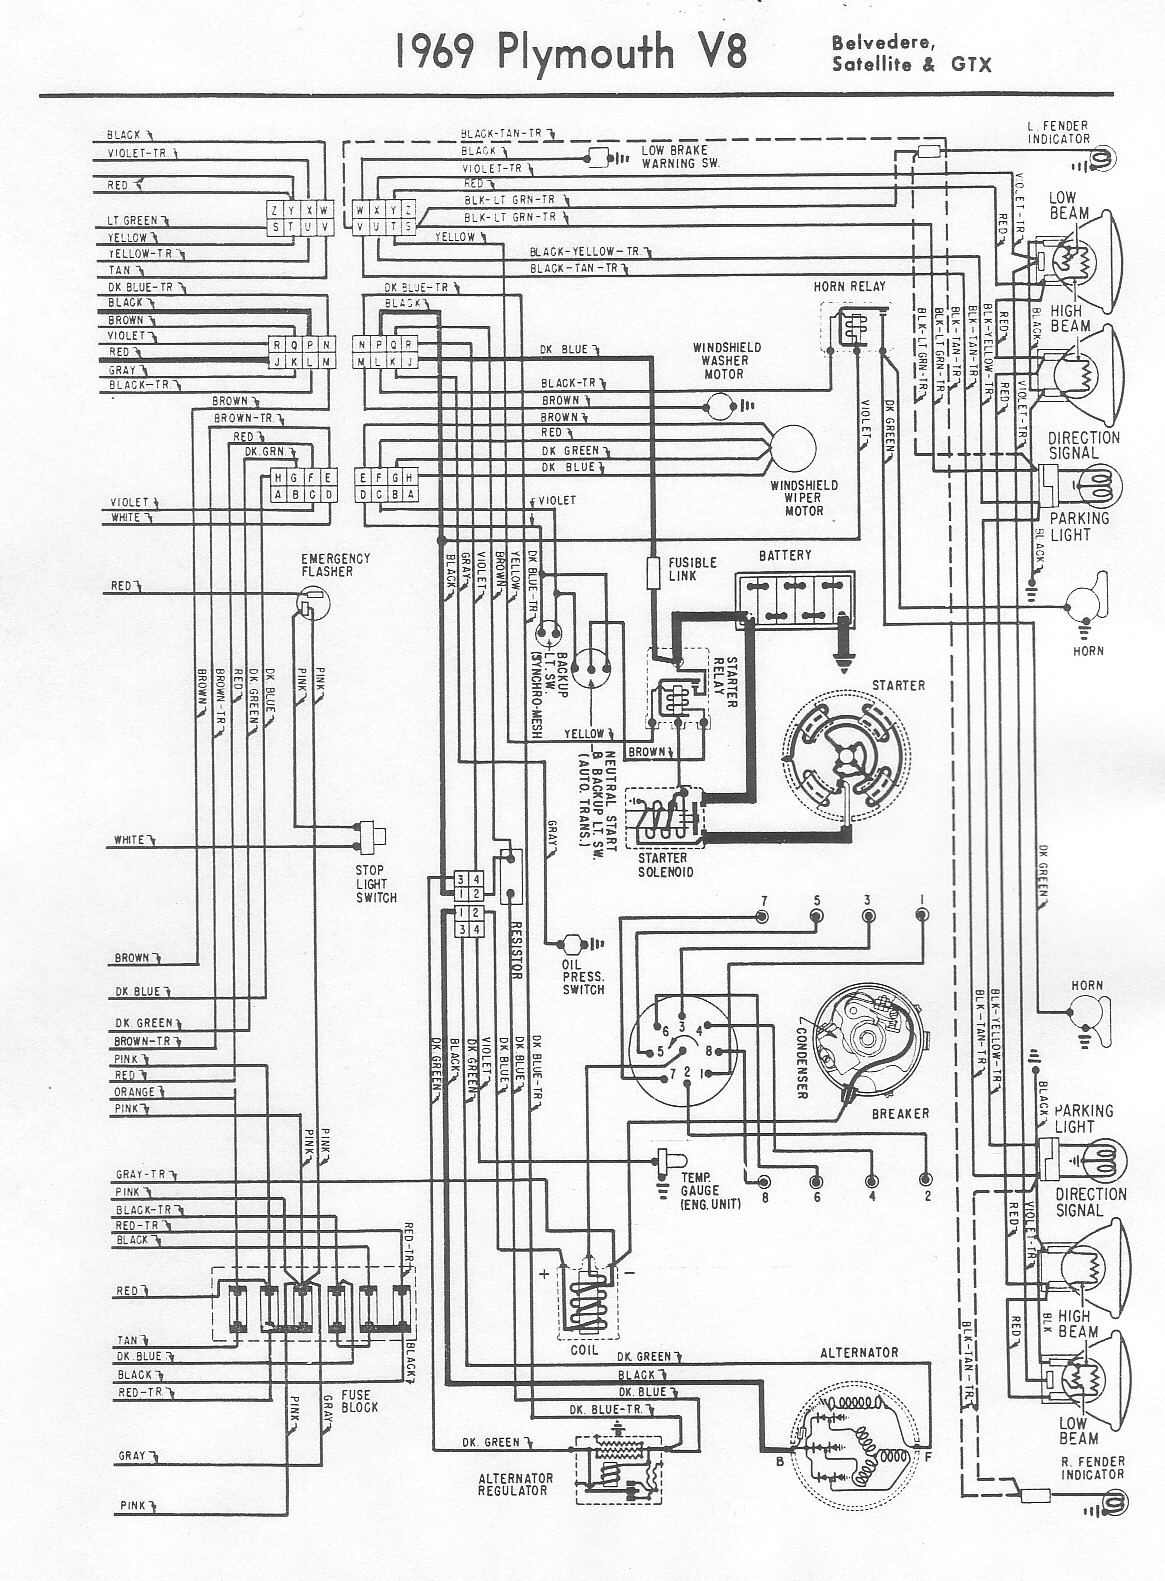 1969 plymouth wiring diagram wiring diagram inside 1969 Plymouth Barracuda Wiring Diagram plymouth wiring harness wiring diagram inside 1969 plymouth fury wiring diagram 1969 plymouth wiring diagram